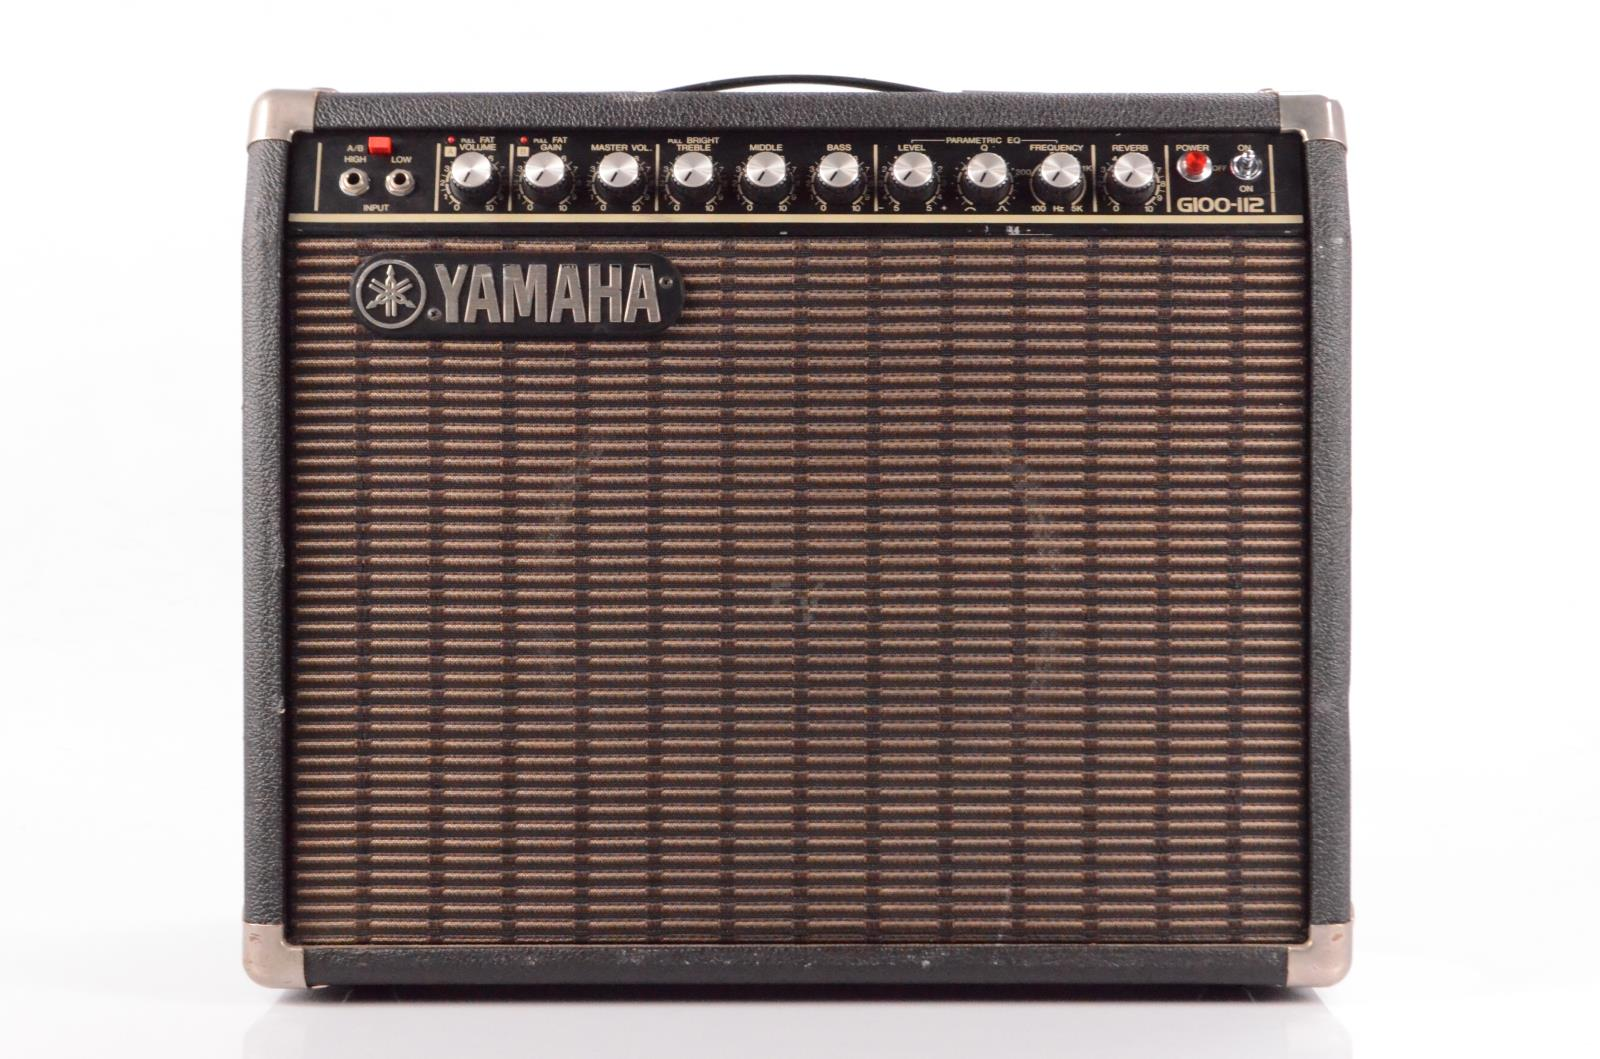 Yamaha G100-112 Combo Amplifier Amp w/ Road Case Owned by Carlos Rios #33941